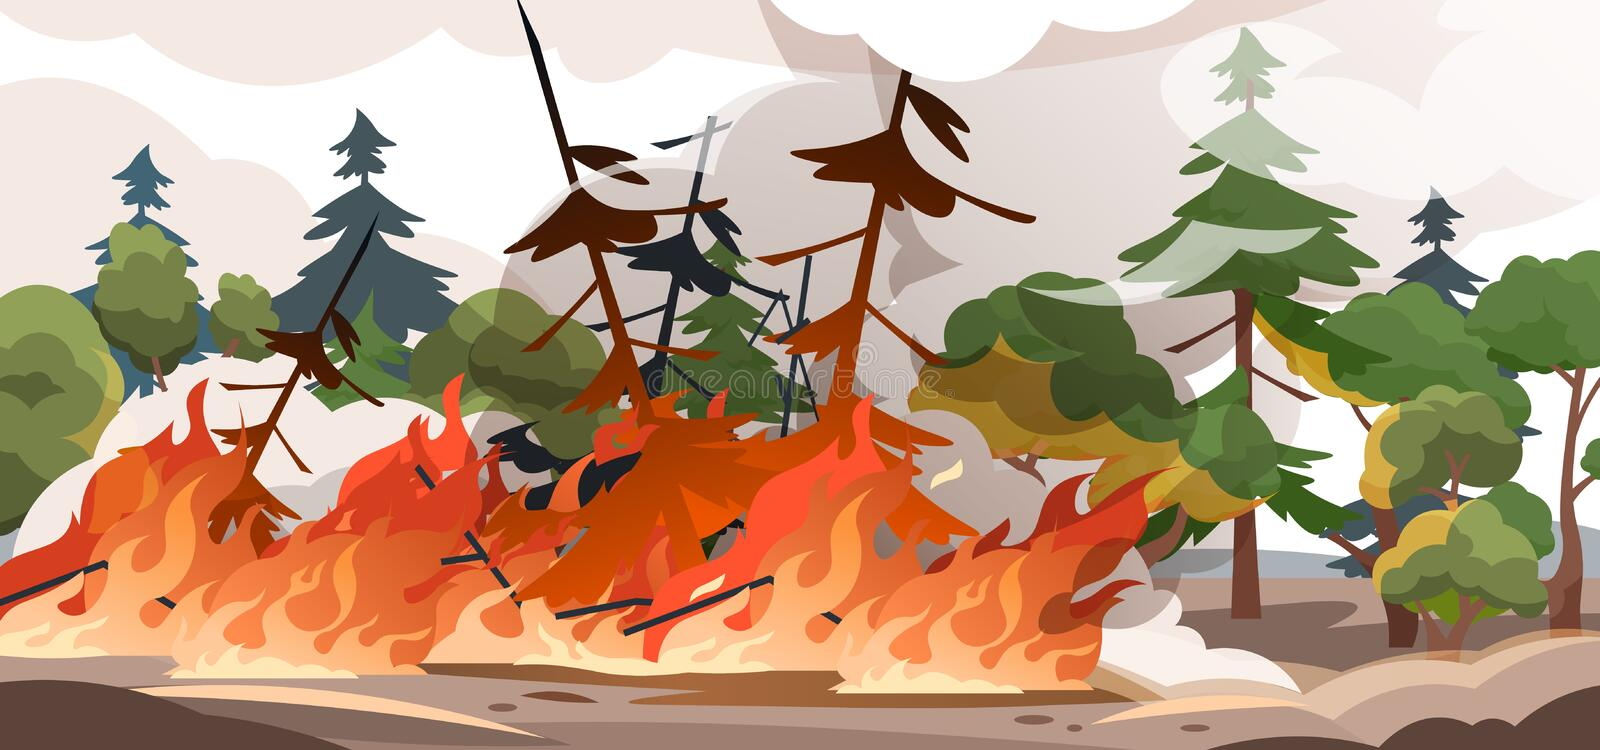 Forest fire. Burning spruces and oak trees, wood plants in flame and smoke, nature disaster cartoon illustration. Vector. Poster flame in nature outdoor, save vector illustration